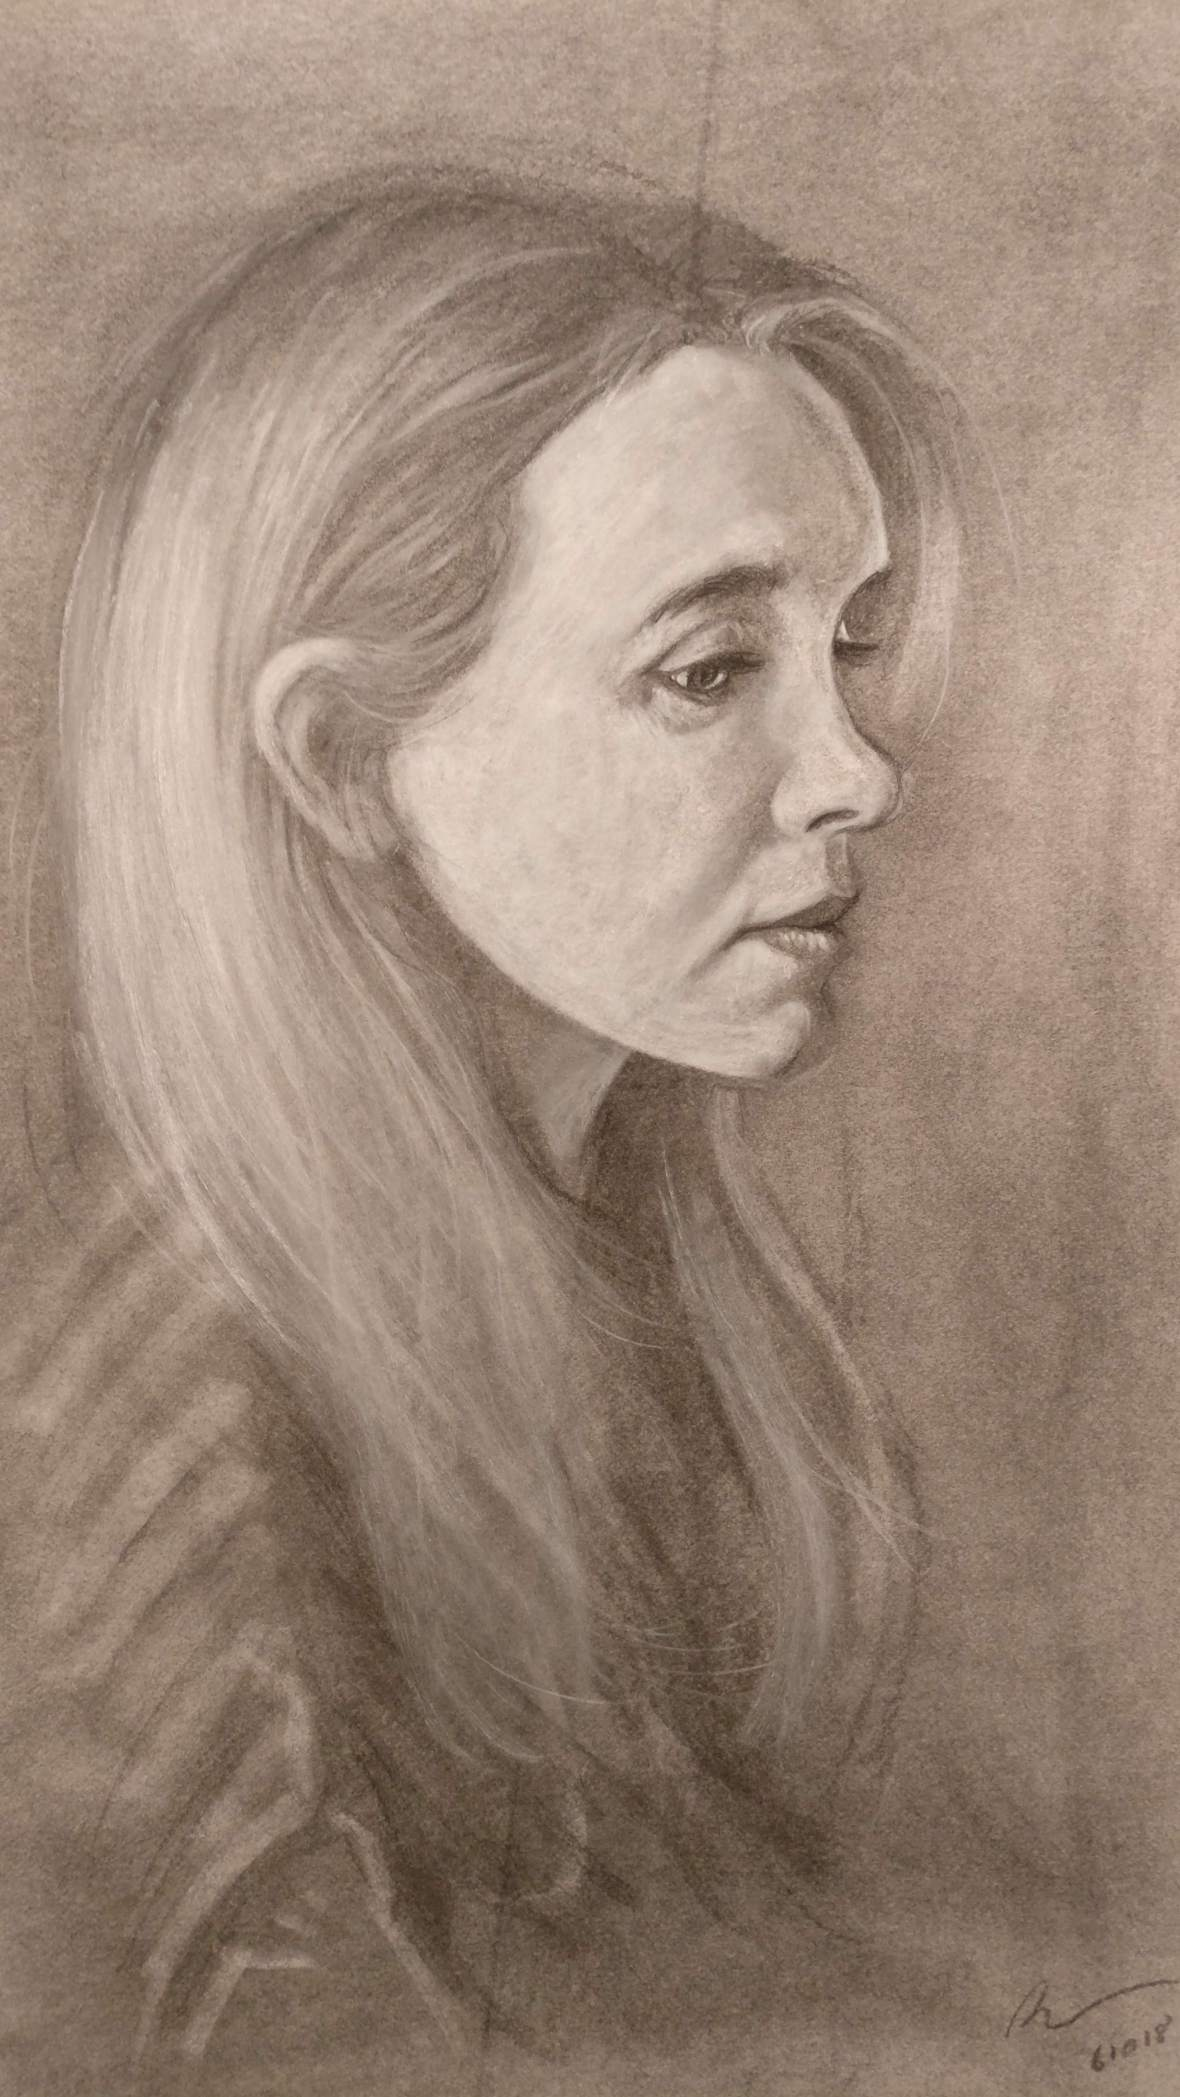 charcoal portrait of a girl's profile